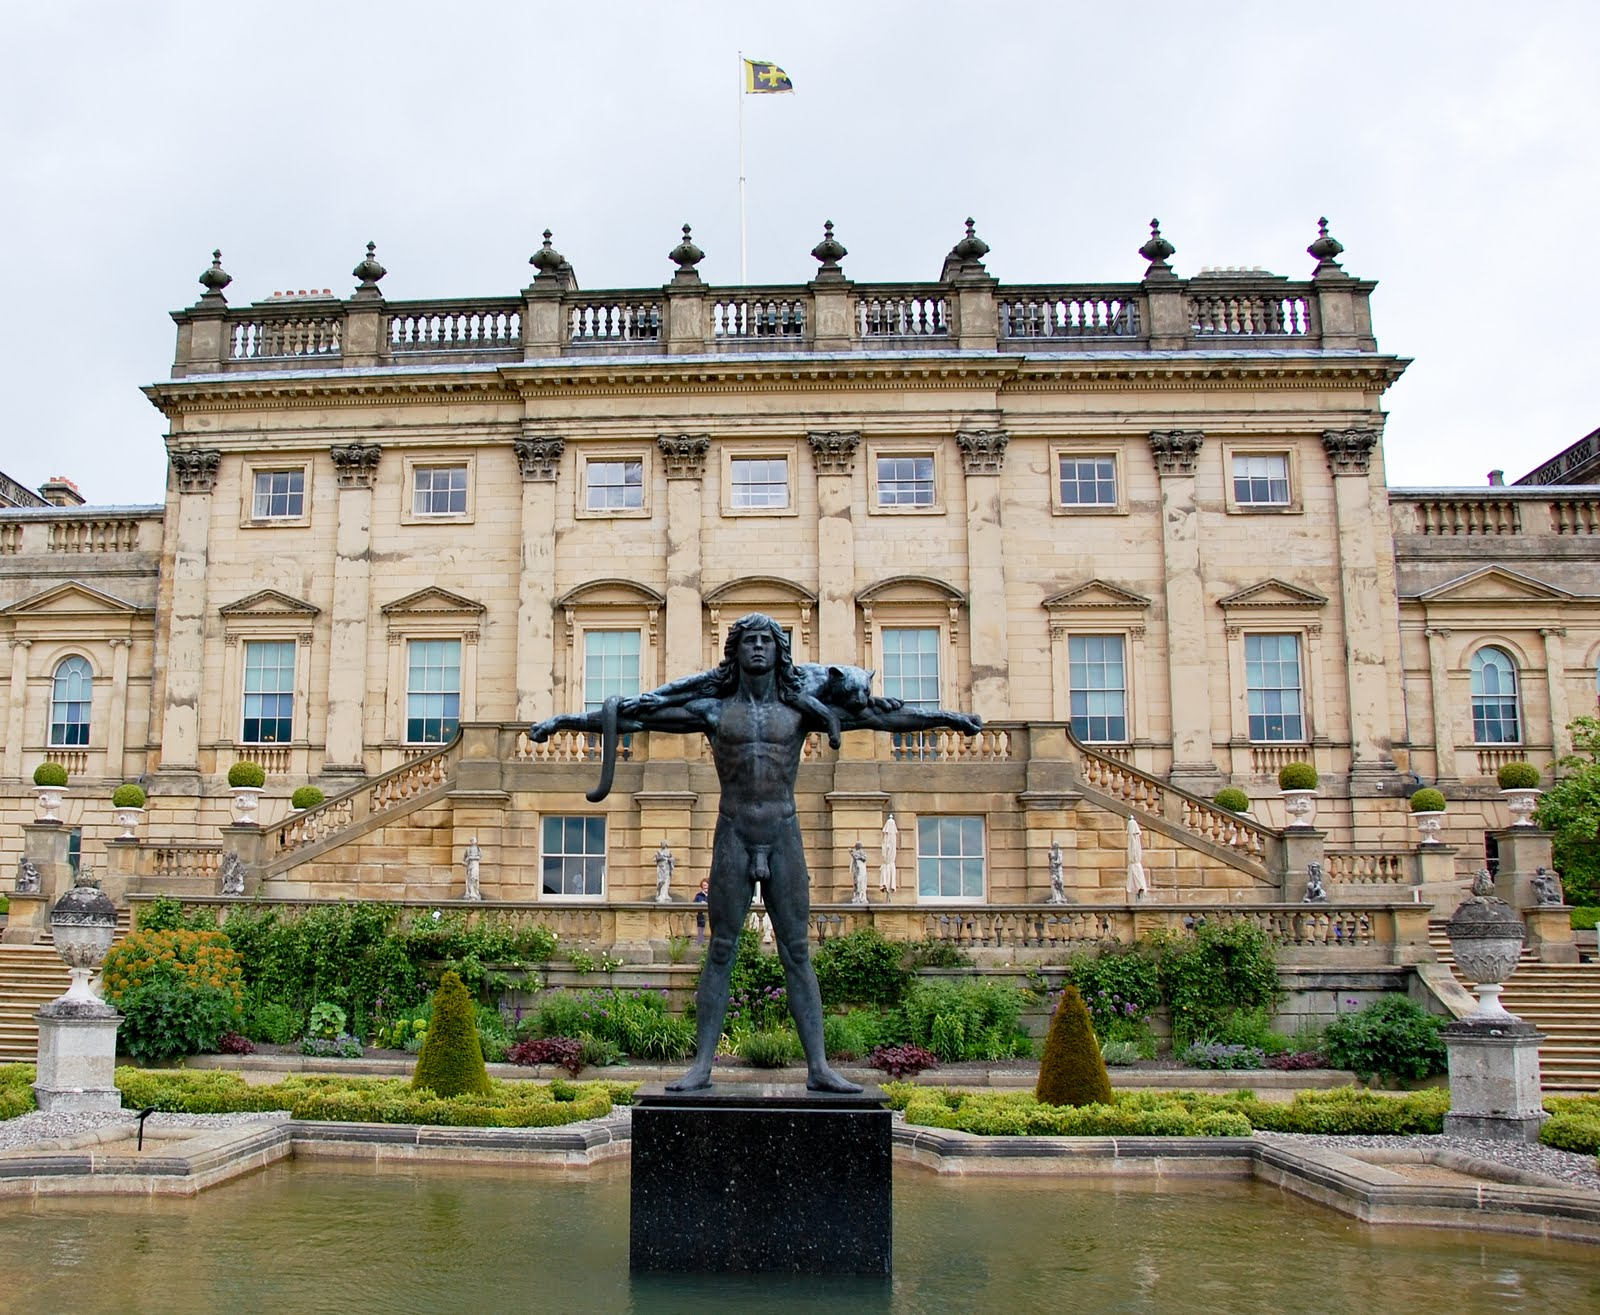 Prepossessing Freeranger Lord Harewood Rip With Foxy I Last Visited The Magnificent Palladian Harewood House Whilst On My Bike  Trip Through Yorkshire In May  The Current Th Earl Clearly Not Only   With Delightful Garden History Courses Also Hanging Garden In Addition In The Night Garden Sneezing And All Day Breakfast Covent Garden As Well As Autumn Colour In The Garden Additionally Garden Shredder Review From Rangefreeblogspotcom With   Foxy Freeranger Lord Harewood Rip With Delightful I Last Visited The Magnificent Palladian Harewood House Whilst On My Bike  Trip Through Yorkshire In May  The Current Th Earl Clearly Not Only   And Prepossessing Garden History Courses Also Hanging Garden In Addition In The Night Garden Sneezing From Rangefreeblogspotcom